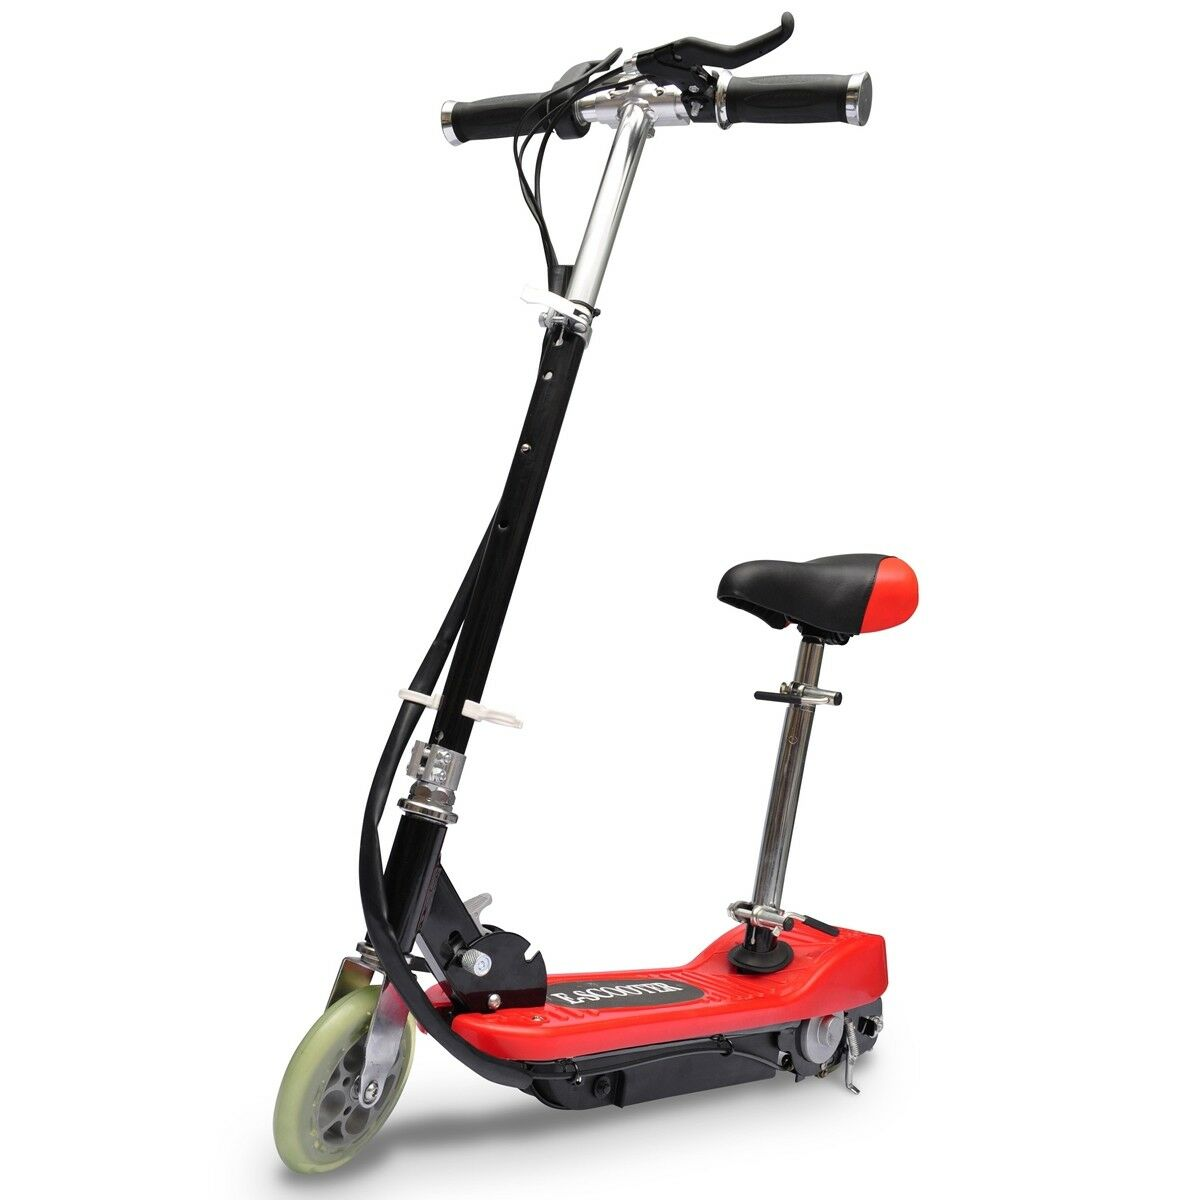 vidaxl e scooter mit sitz 120w akku motor elektroroller 12. Black Bedroom Furniture Sets. Home Design Ideas